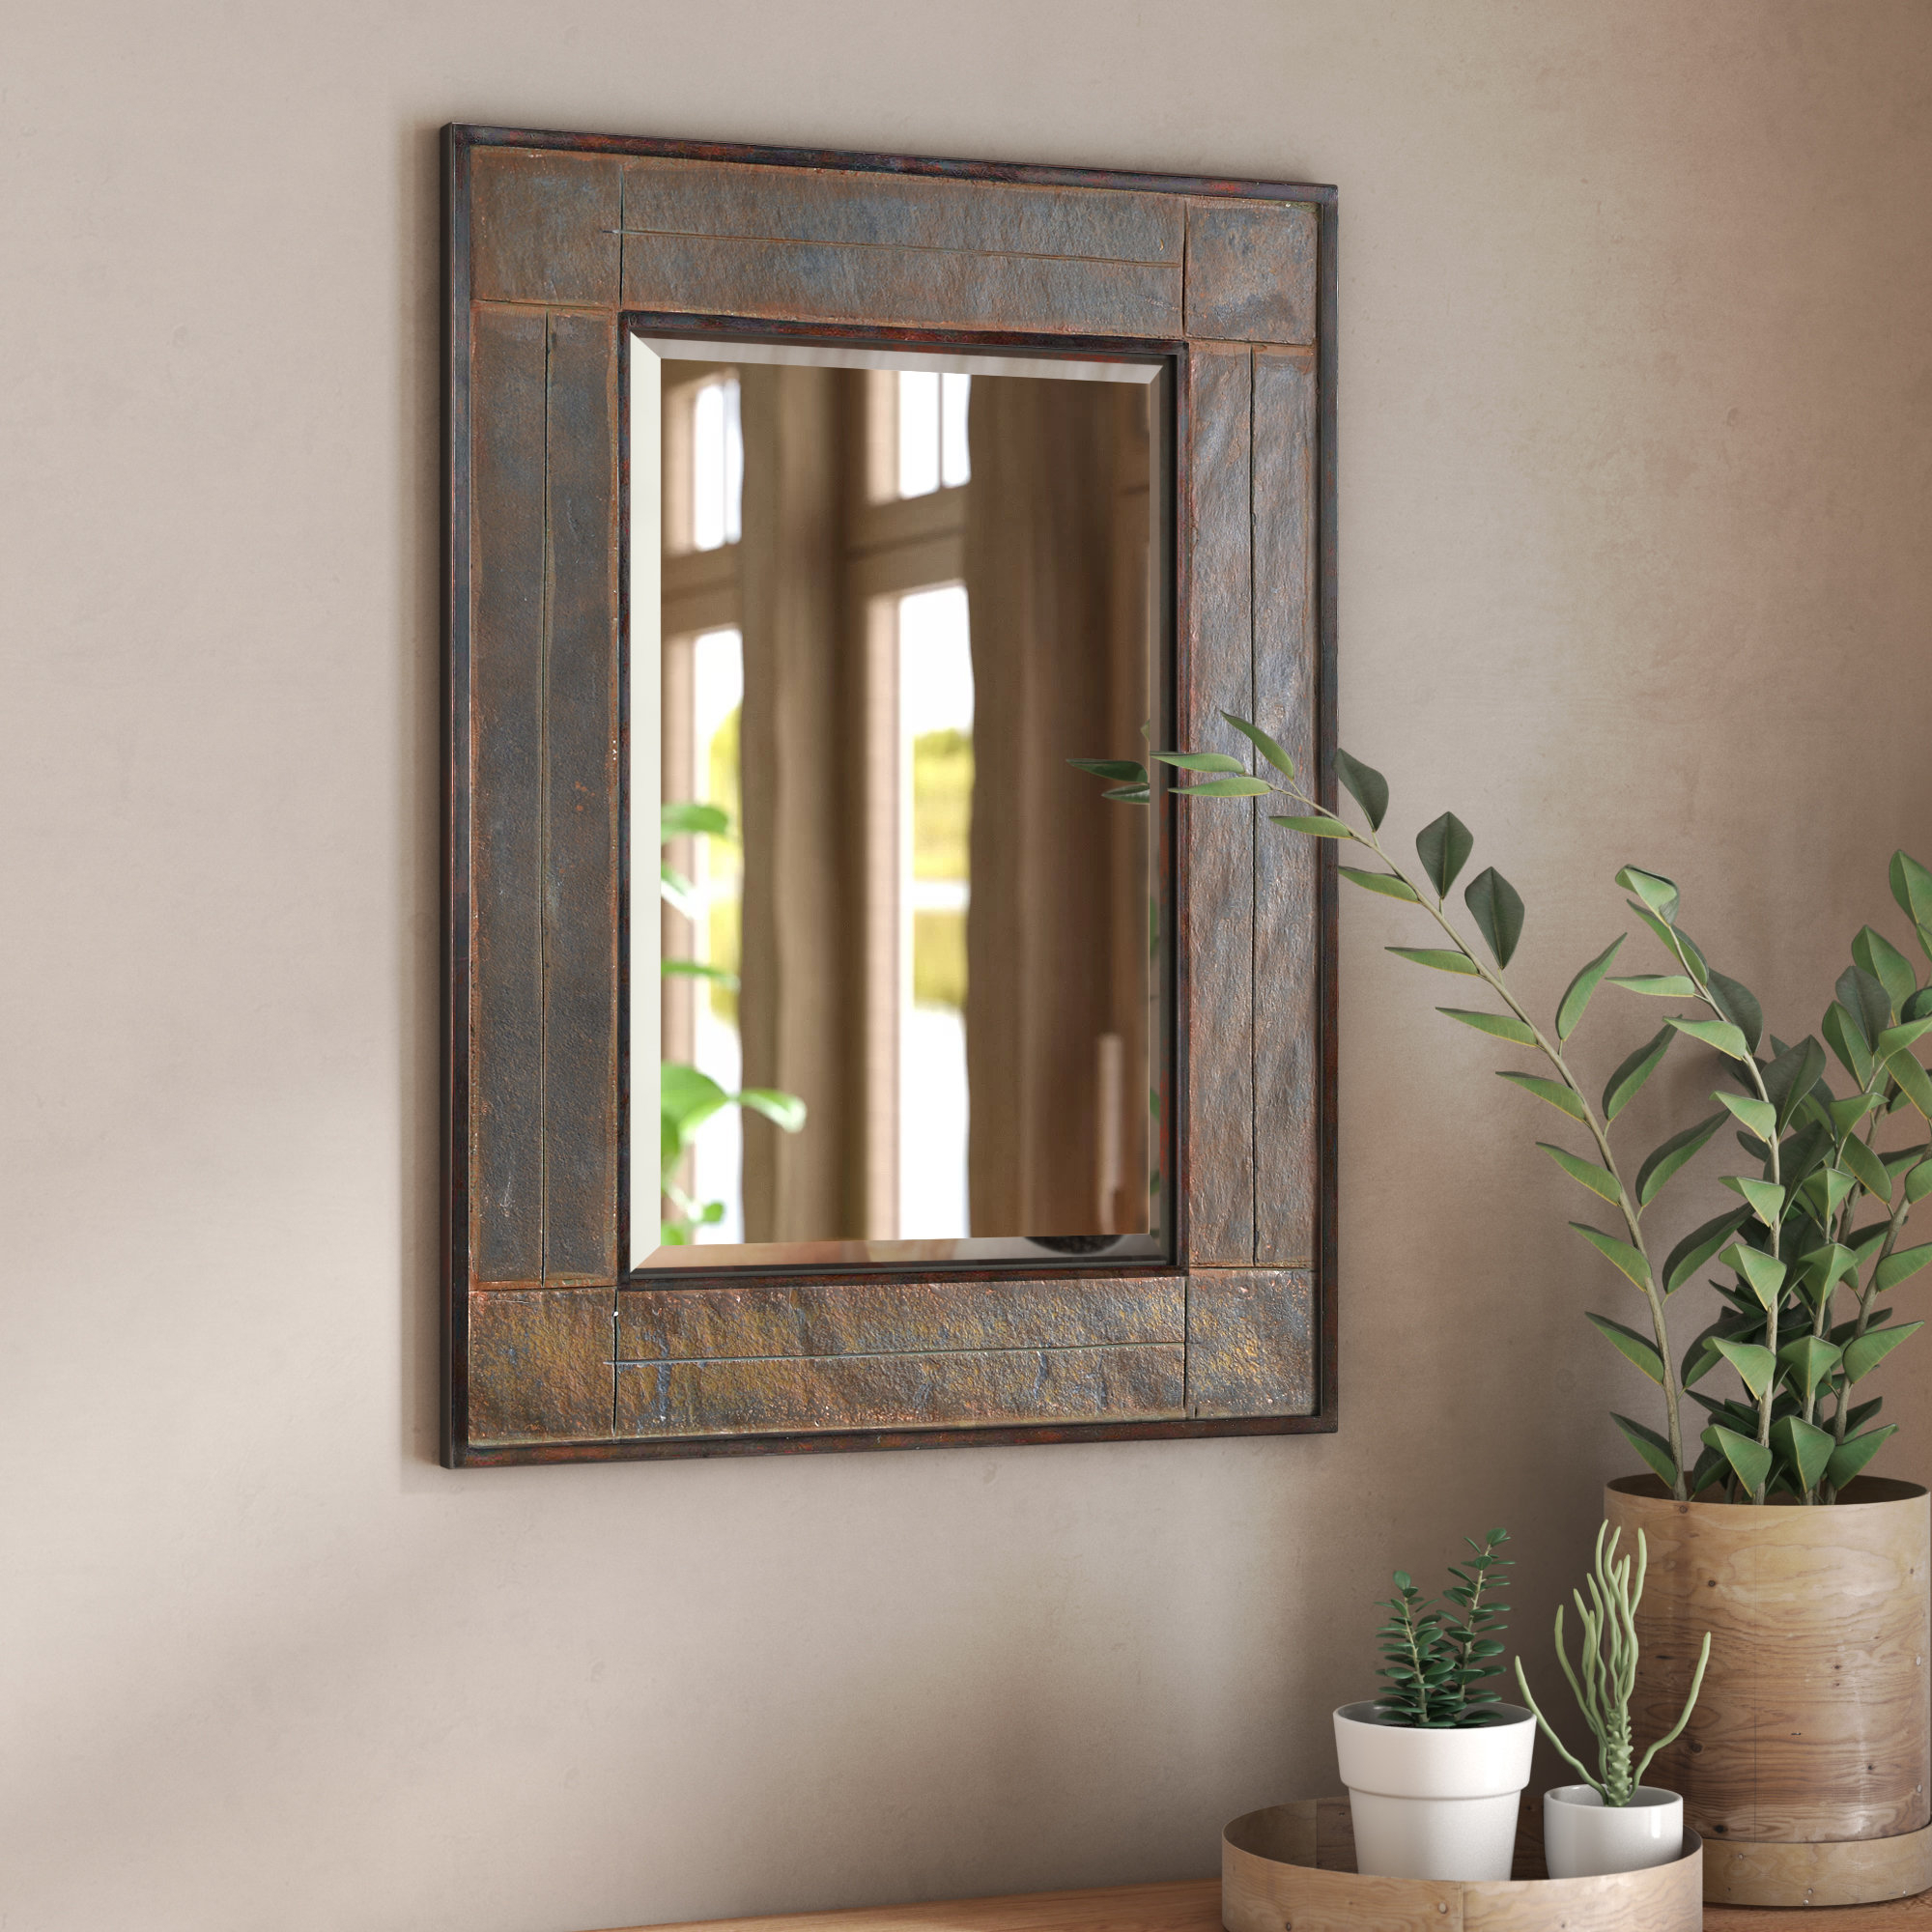 Appleby Accent Mirror In Favorite 2 Piece Priscilla Square Traditional Beveled Distressed Accent Mirror Sets (View 6 of 20)